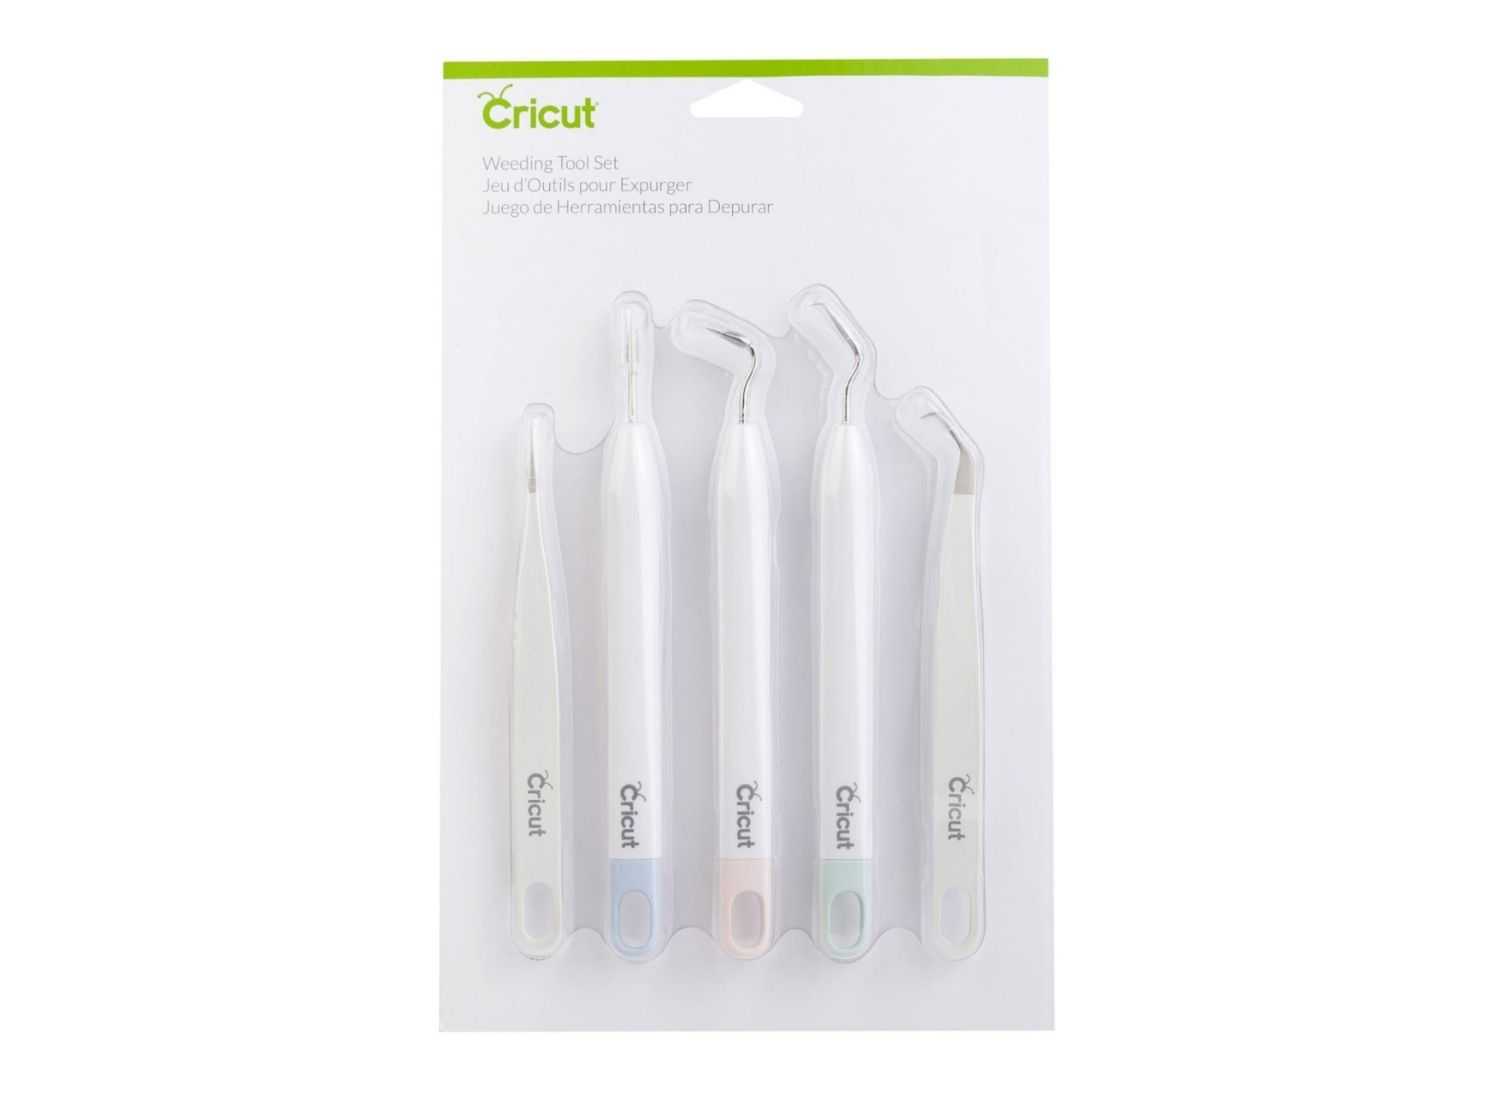 cr2004233 cricut kit per rimuovere